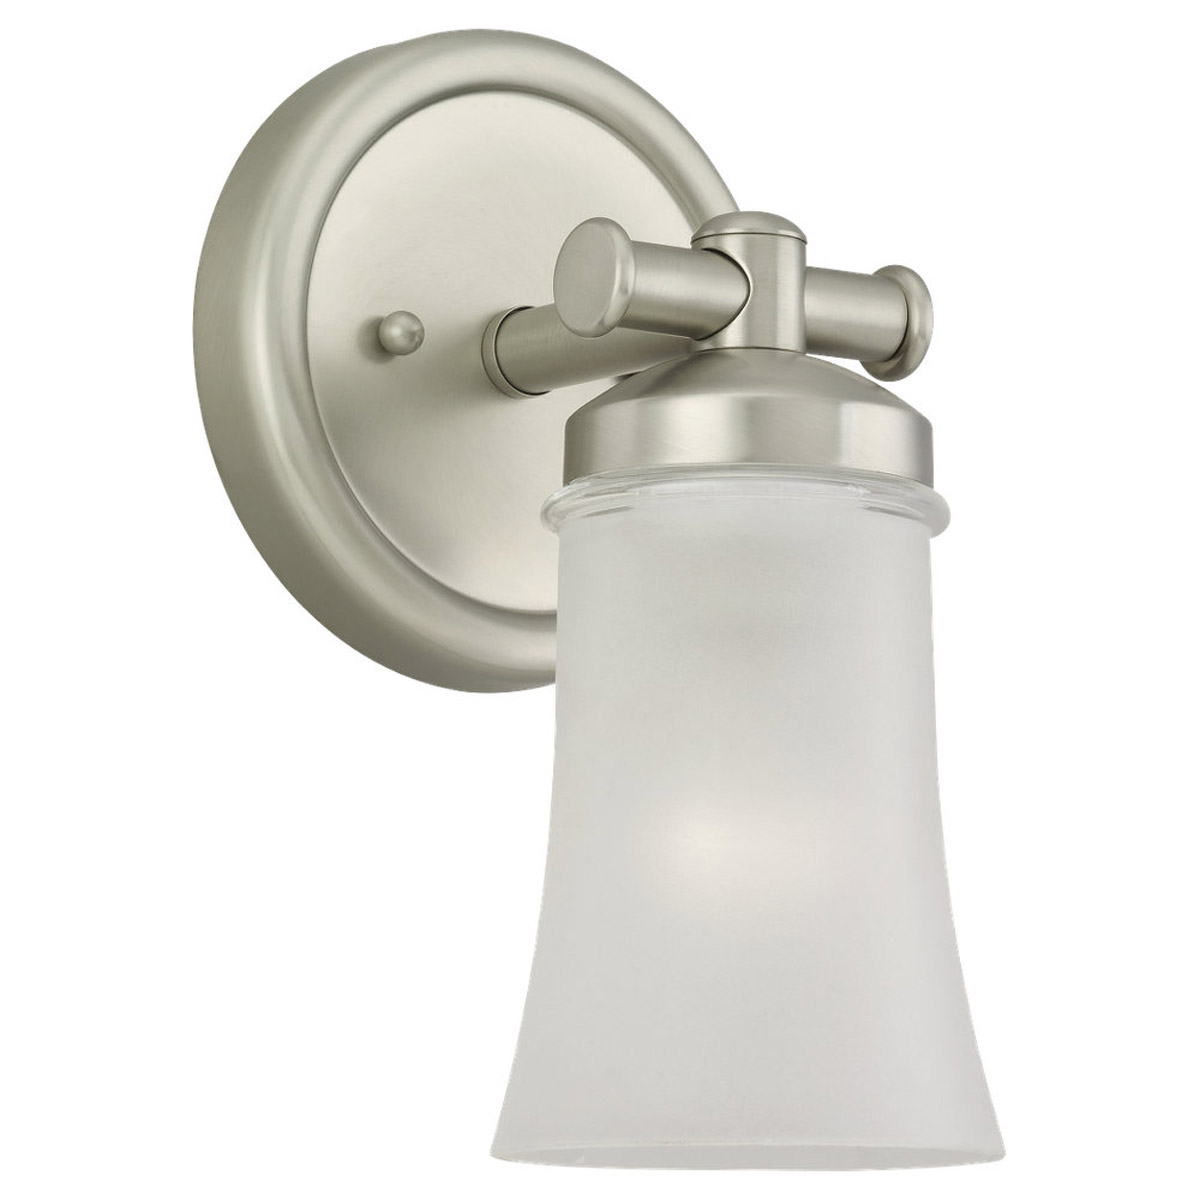 Sea Gull Lighting Newport 1 Light Wall Sconce in Antique Brushed Nickel 44482BLE-965